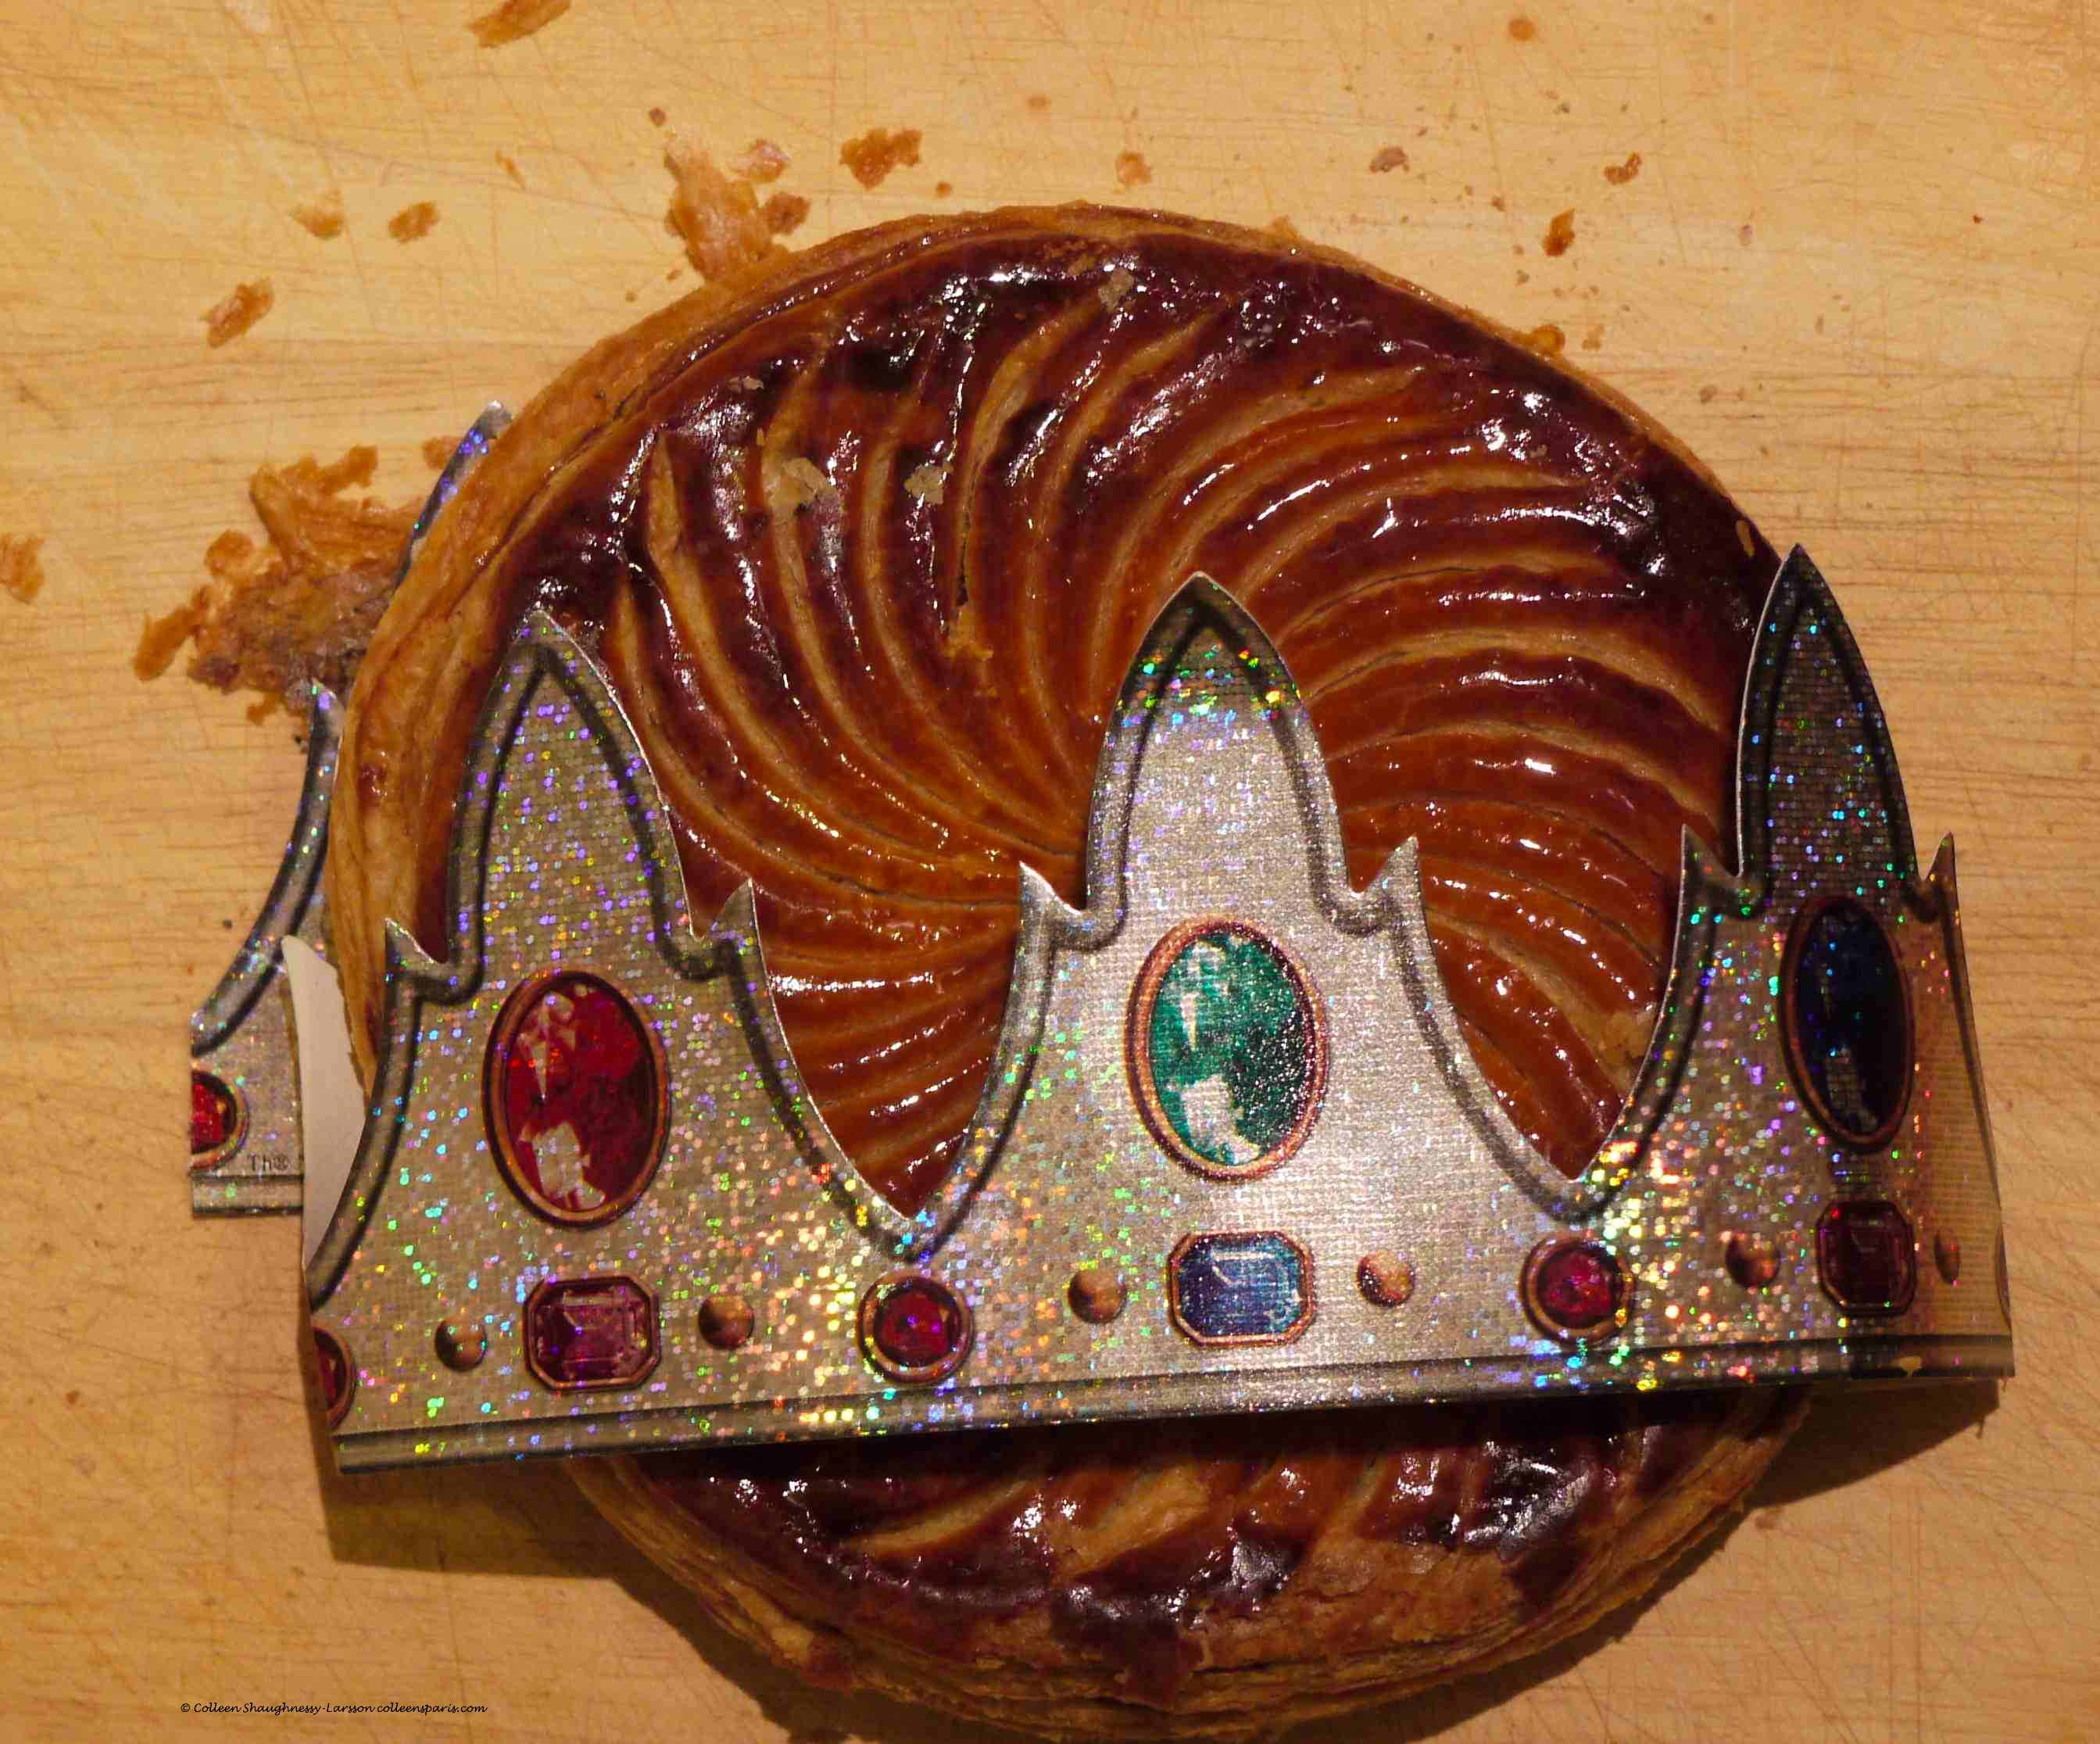 Galette des Rois with crown